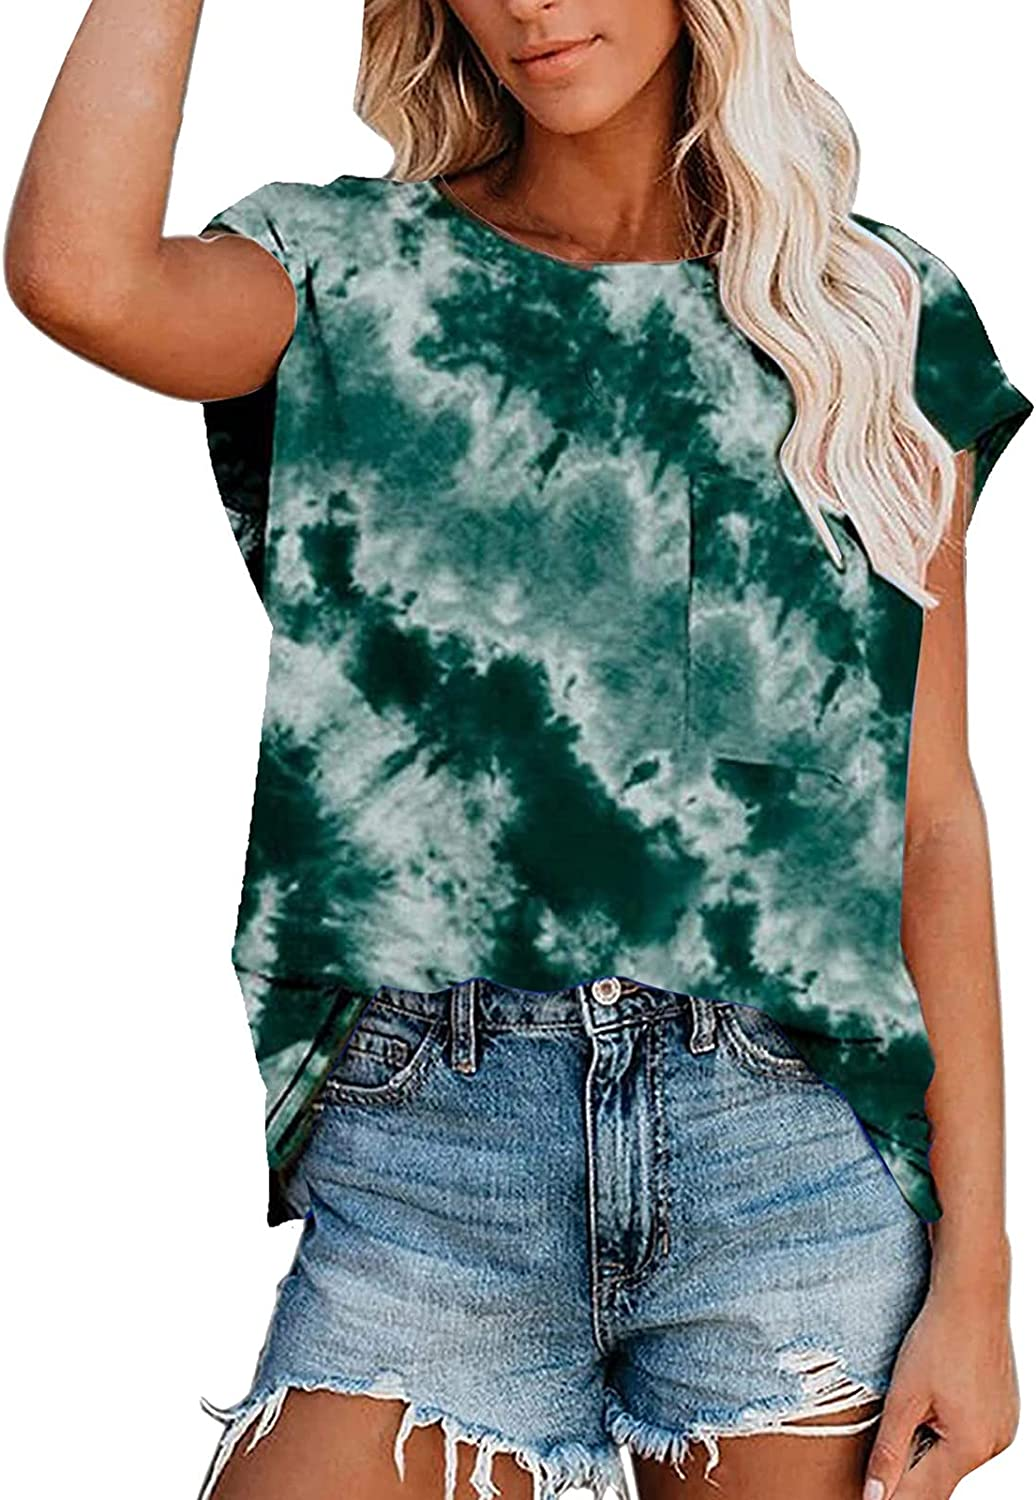 FABIURT Womens Short Sleeve Tops, Women's Fashion Gradient Printed Tee Loose Fit T Shirts Casual Summer Tunic Top Blouse